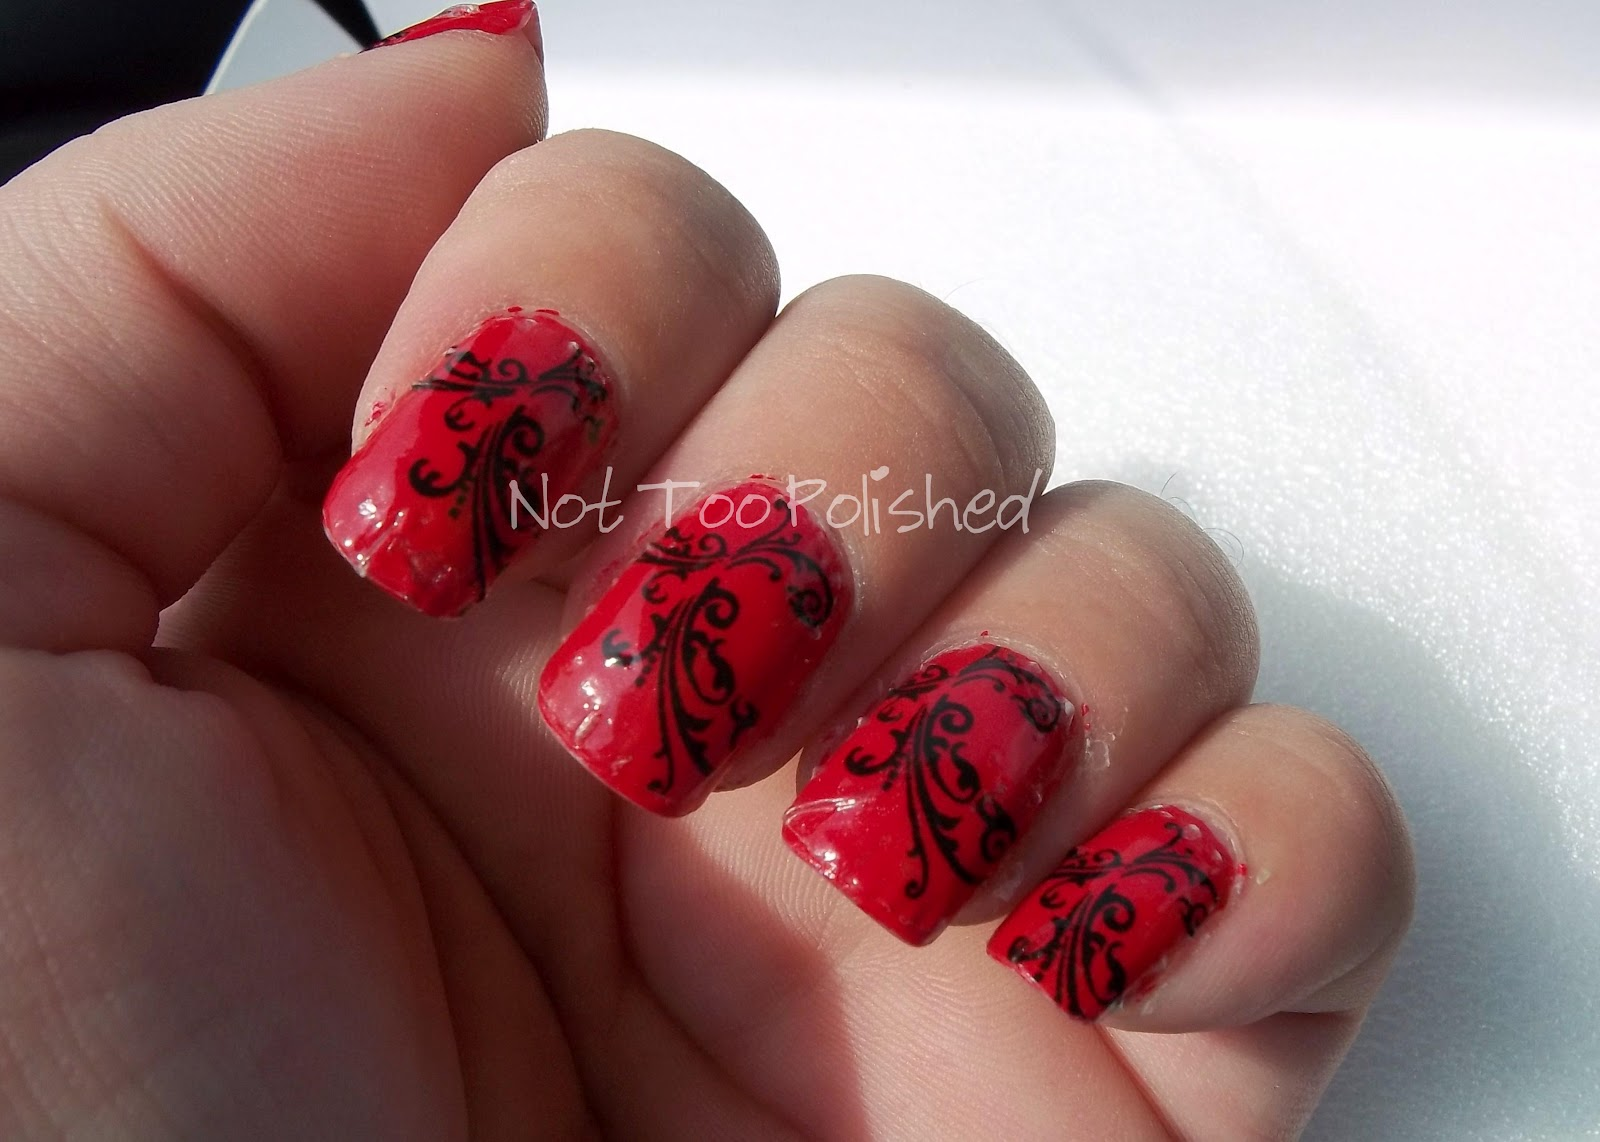 Not too polished easiest nail art ever decals by long changed i dont even do so well with those french tip sticker guides so when i come across pretty full nail decals that take all the guess work out of nail art solutioingenieria Image collections